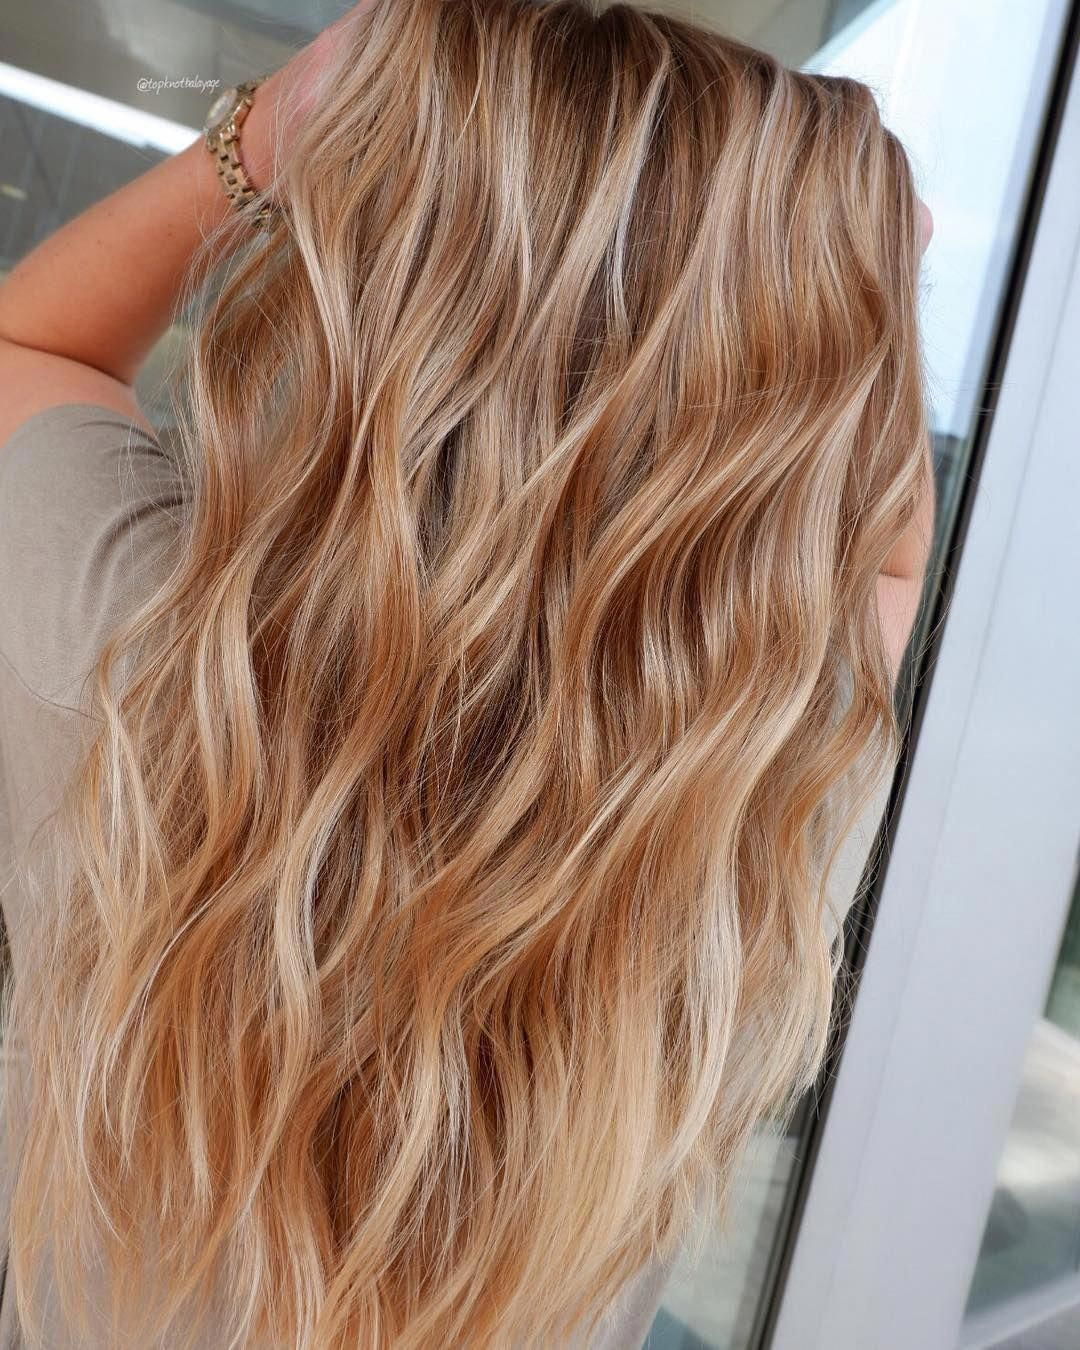 Most up-to-date Cost-Free Balayage hair blonde sand Concepts Summer's along the way! And also each of our thought processes choose smarter, brighter, extra att #Balayage #blonde #Concepts #CostFree #hair #sand #uptodate #longblondehair